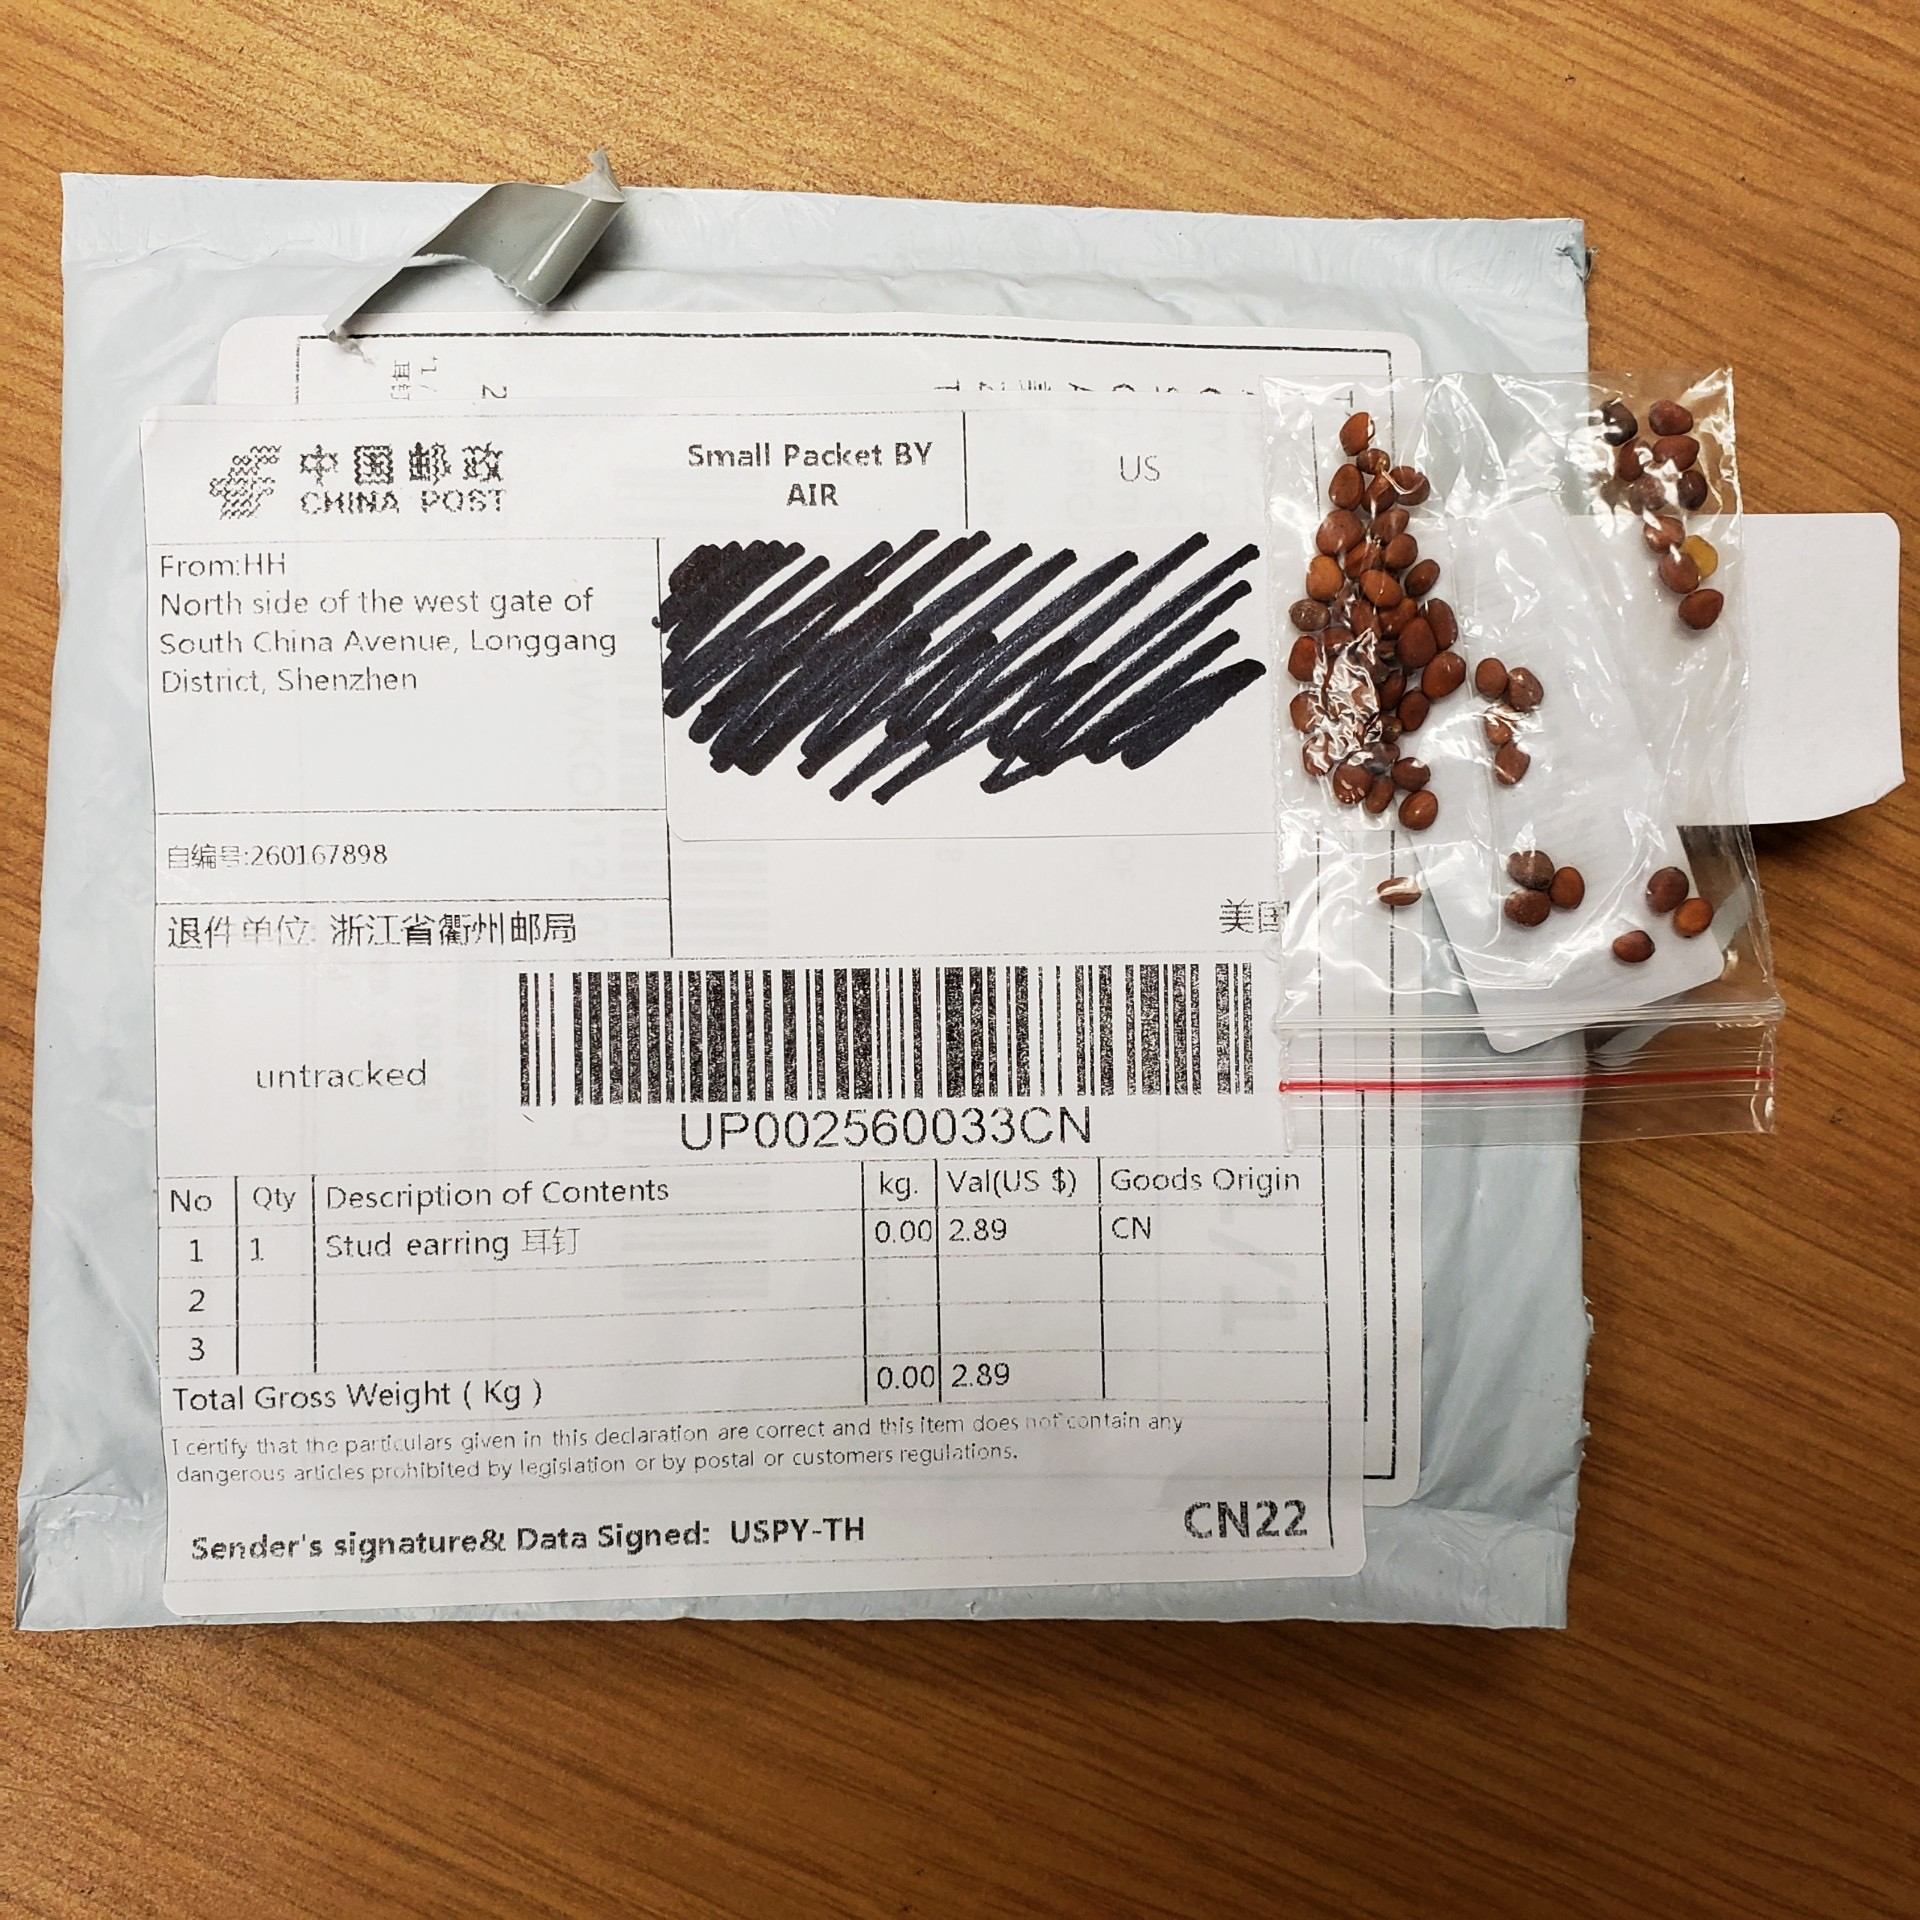 Unsolicited seed shipments from China hit the Central Coast